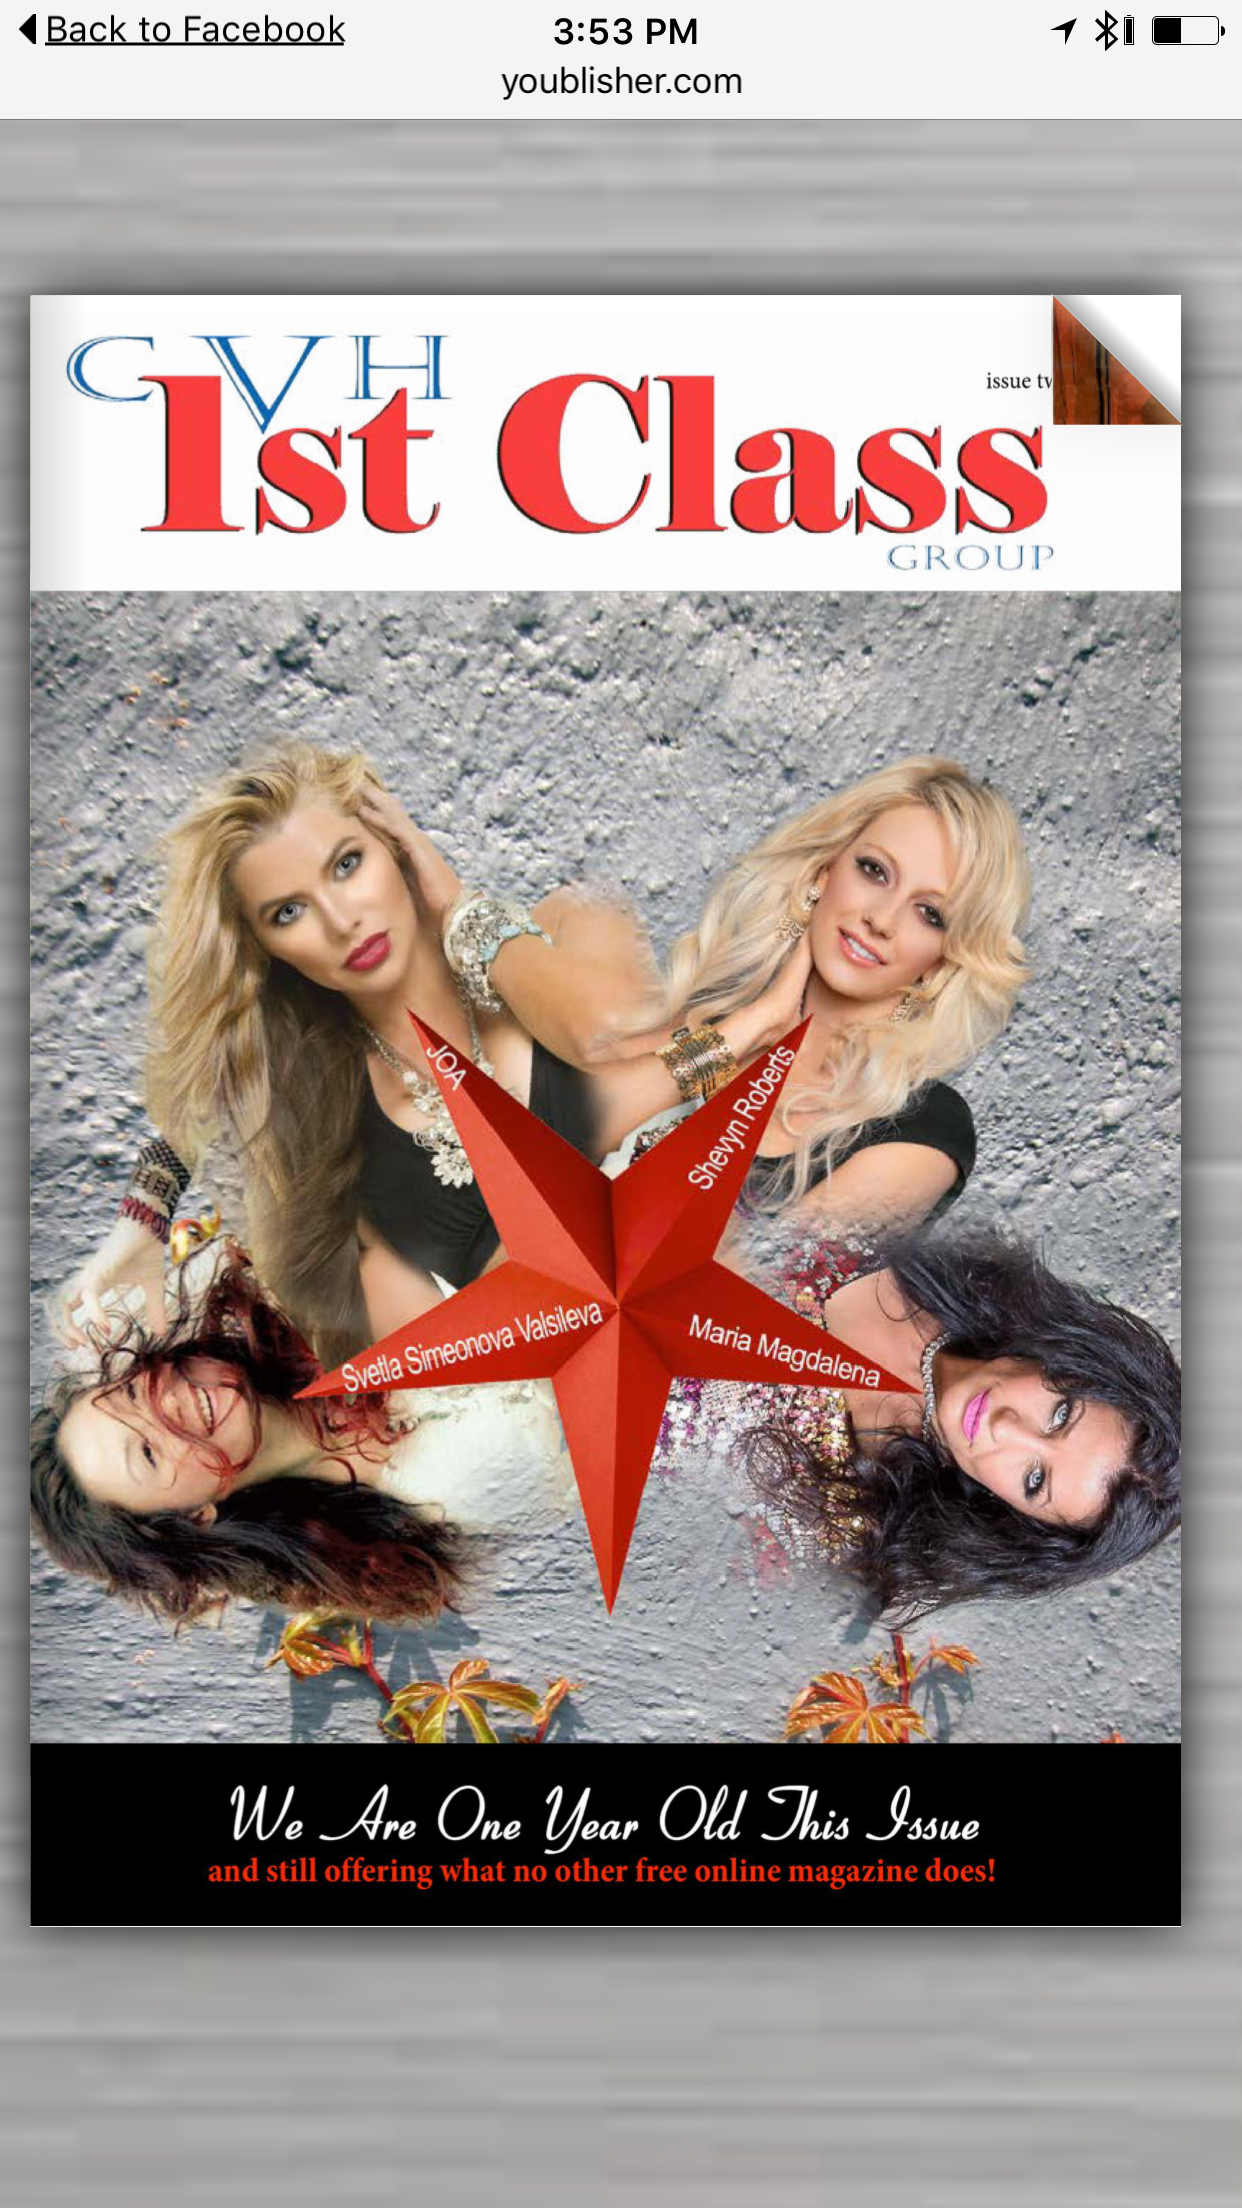 First Class Magazine with J.O.A.